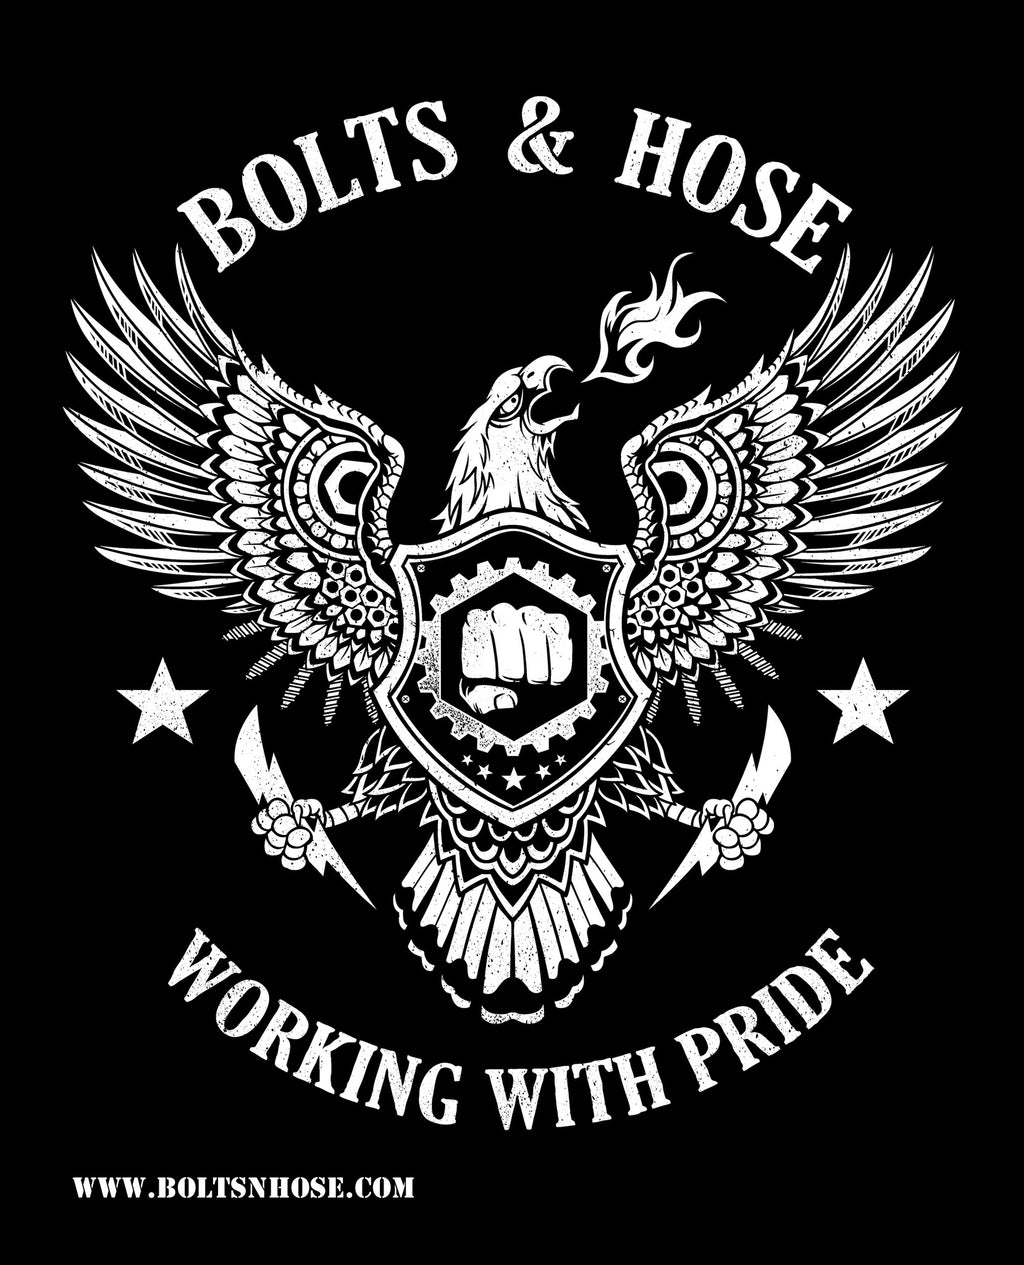 Bolts & Hose™ Working With Pride Poster - Bolts & Hose